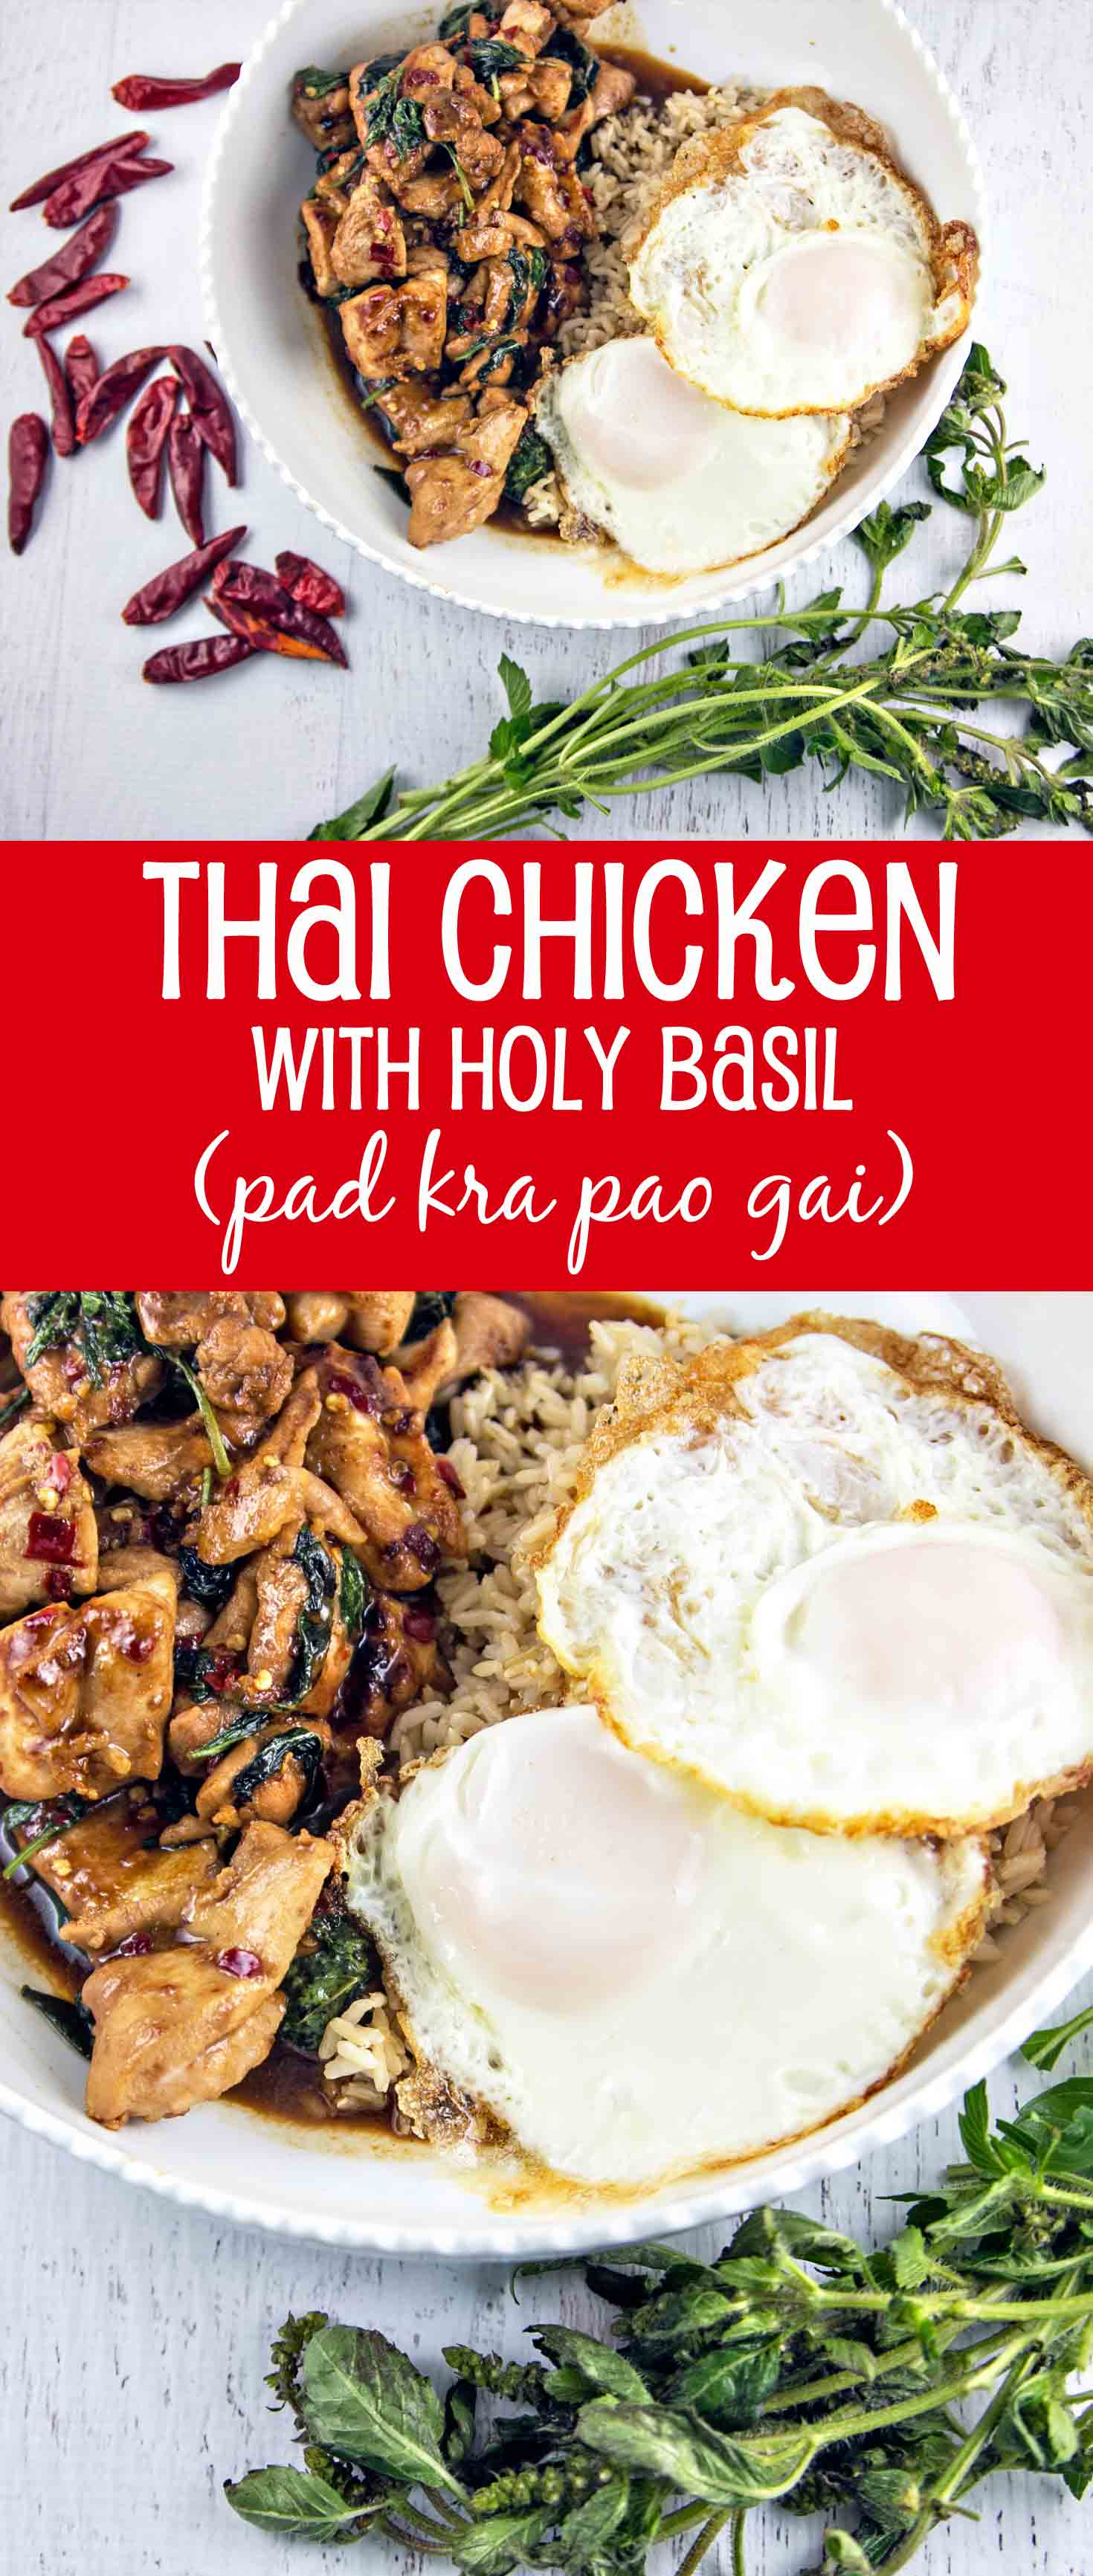 Thai Chicken with Holy Basil (pa kra pao gai): Stir fried chicken and holy basil combine quickly into a delicious sweet and spicy dish -- Thailand's most popular street food! {Bunsen Burner Bakery}